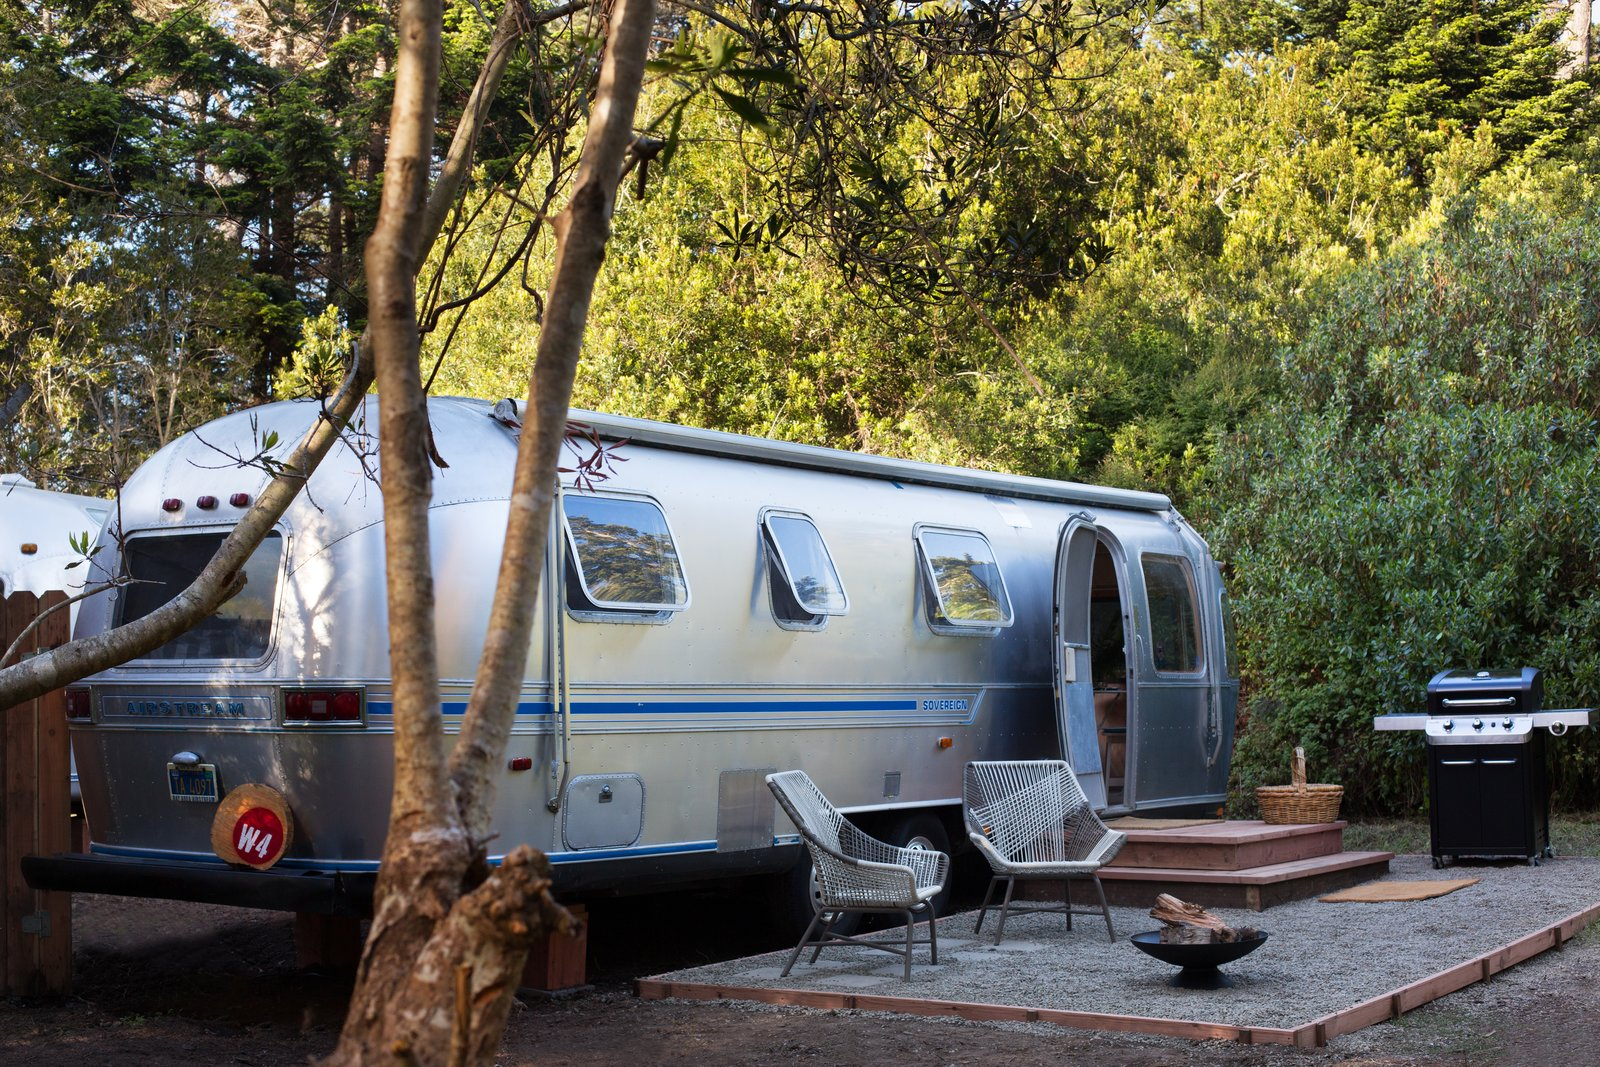 Tagged Exterior and Airstream Building Type. Photo 6 of 15 in C& Out in & Photo 6 of 15 in Camp Out in a Comfortable Tent or Airstream in ...